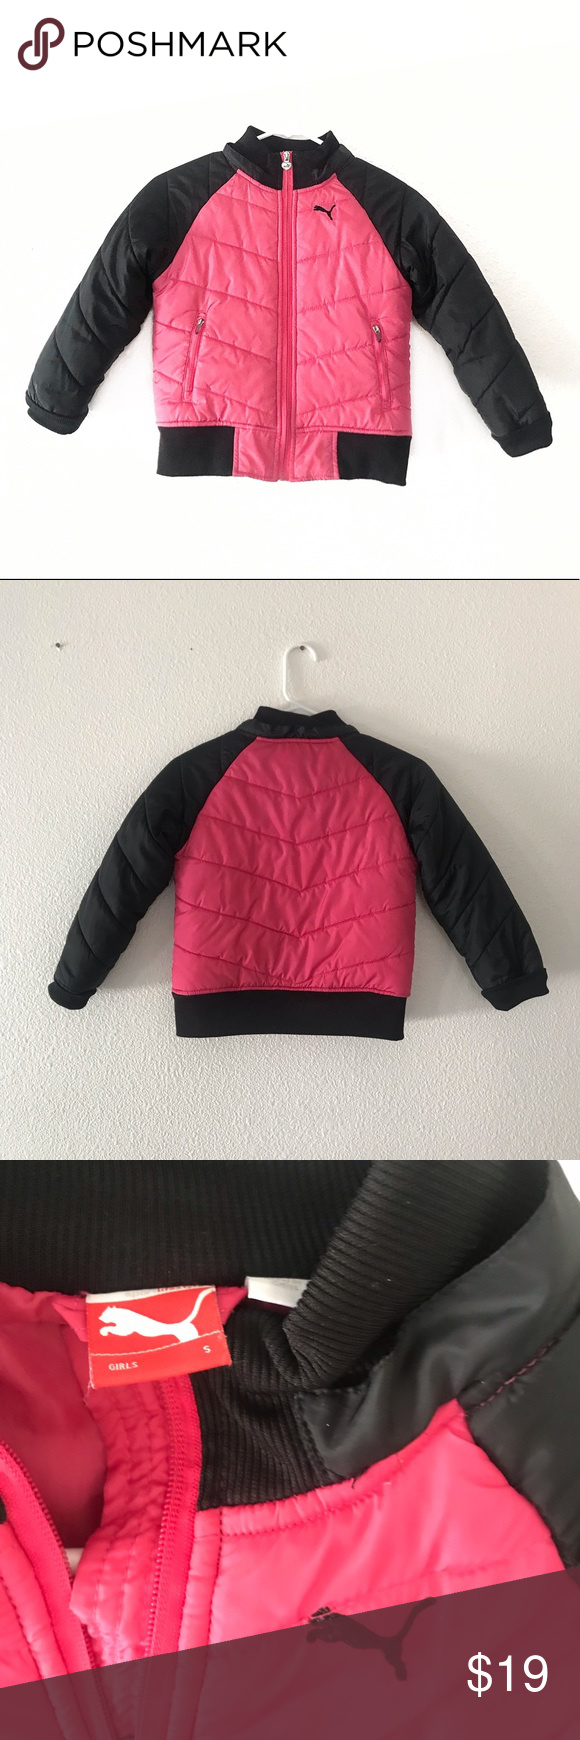 """290ad89612f4 Puma little girls colorblock puffer jacket small Puma little girls  colorblock puffer jacket small Pit to pit 17"""" Raglan Sleeve 22"""" Length 19""""  Good clean ..."""